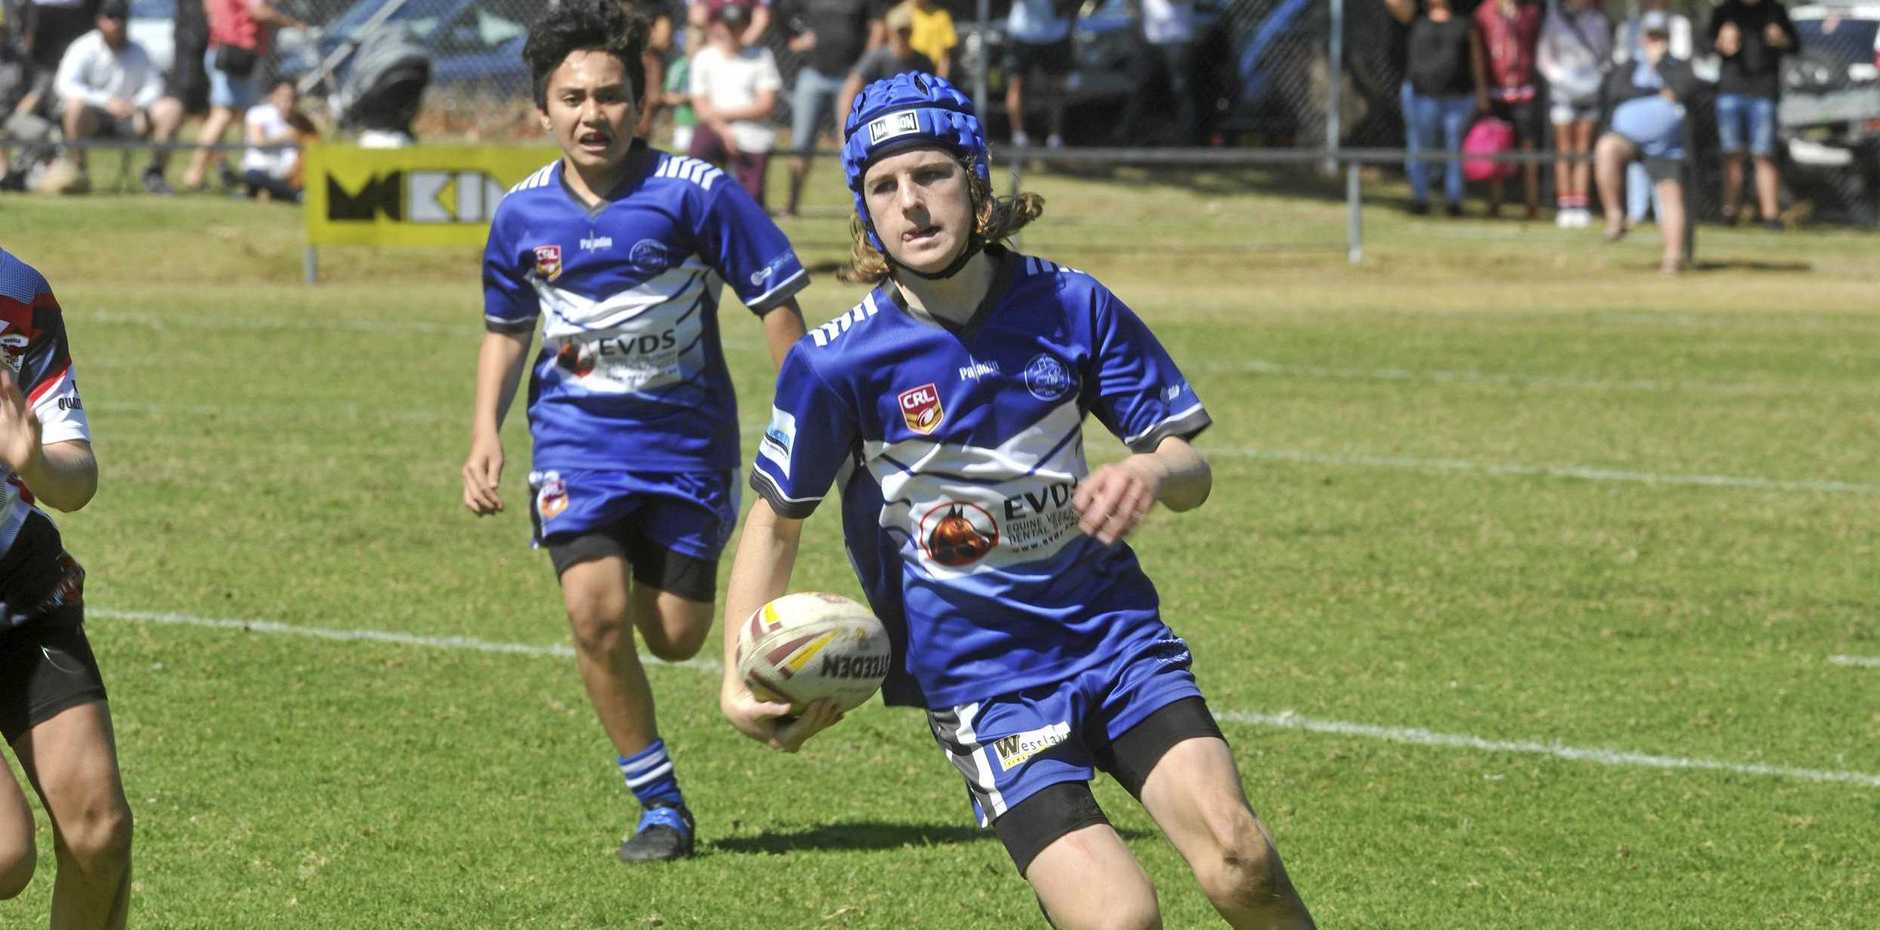 Koopah Walters heads for the line between the Grafton Ghosts and the Kyogle Turkeys in the under-12 grand final at Frank McGuren Field on Saturday.